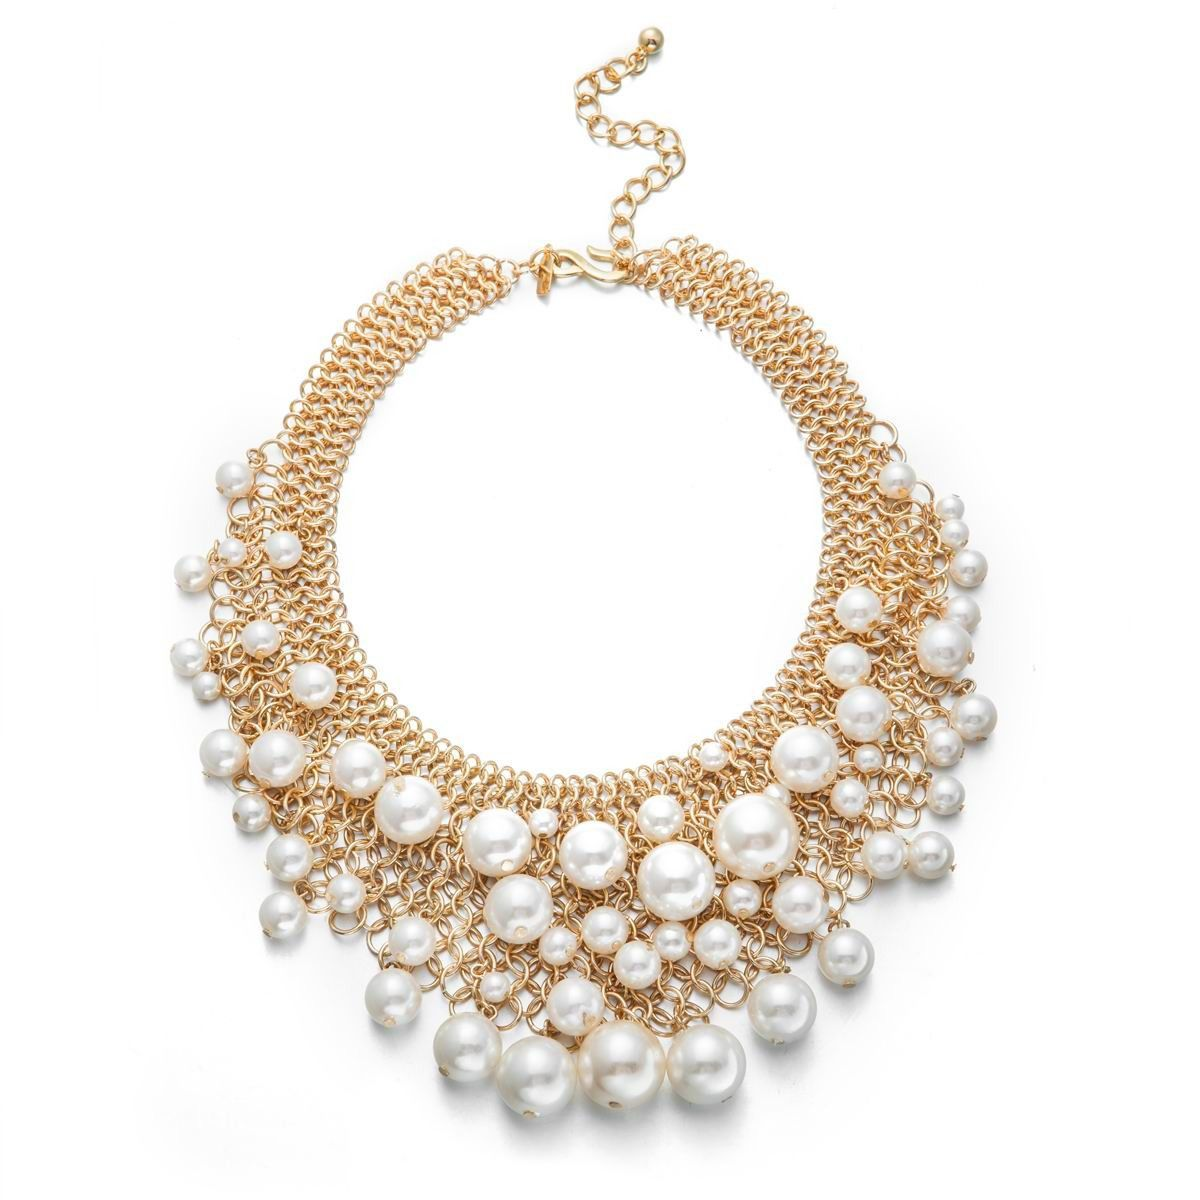 Kenneth Jay Lane Simulated Pearl & Gold Mesh Bib Necklace